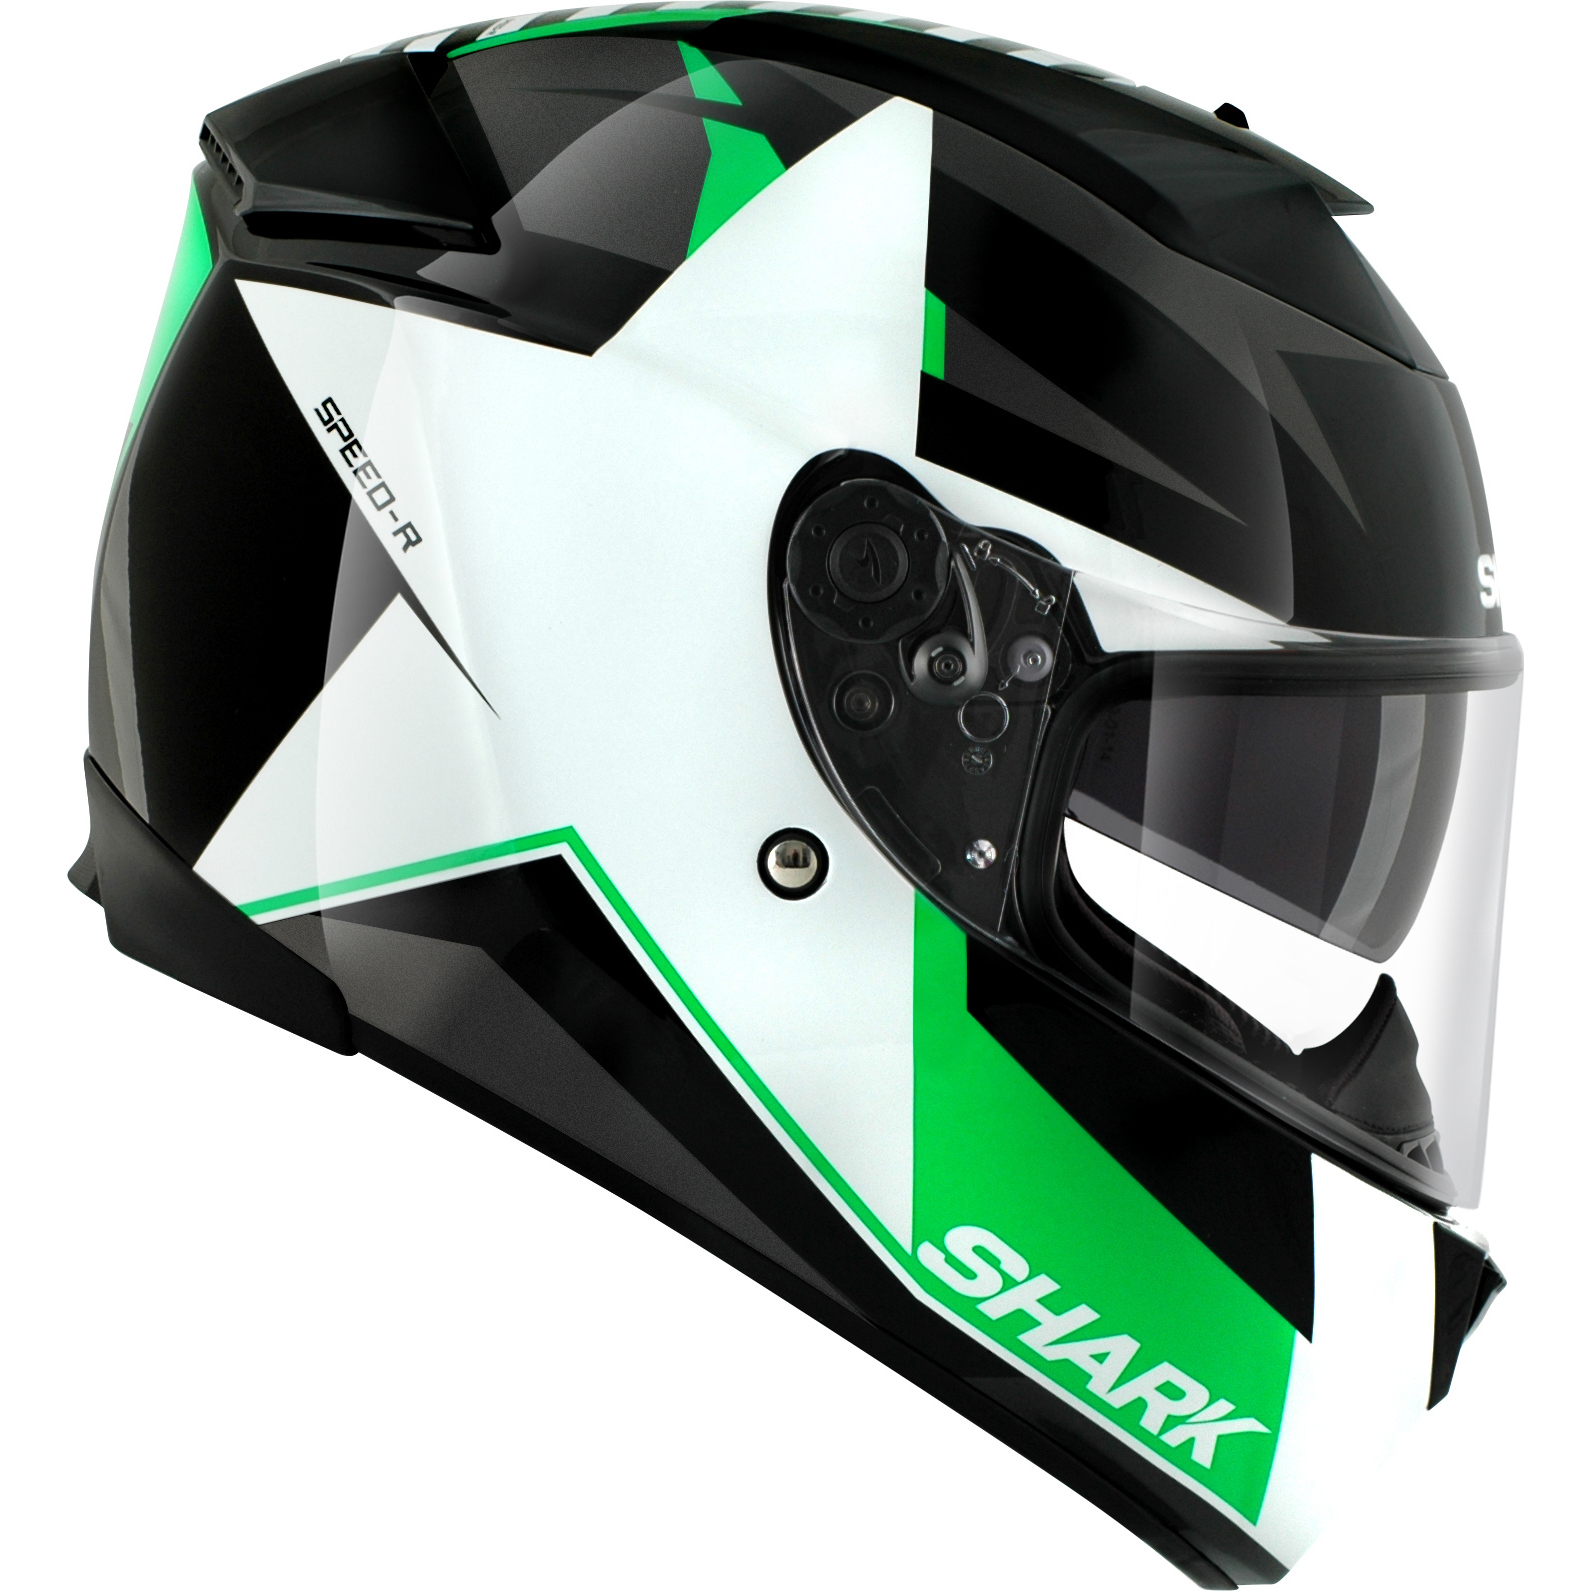 shark speed r max vision texas motorcycle helmet race crash dd ring sun visor ebay. Black Bedroom Furniture Sets. Home Design Ideas